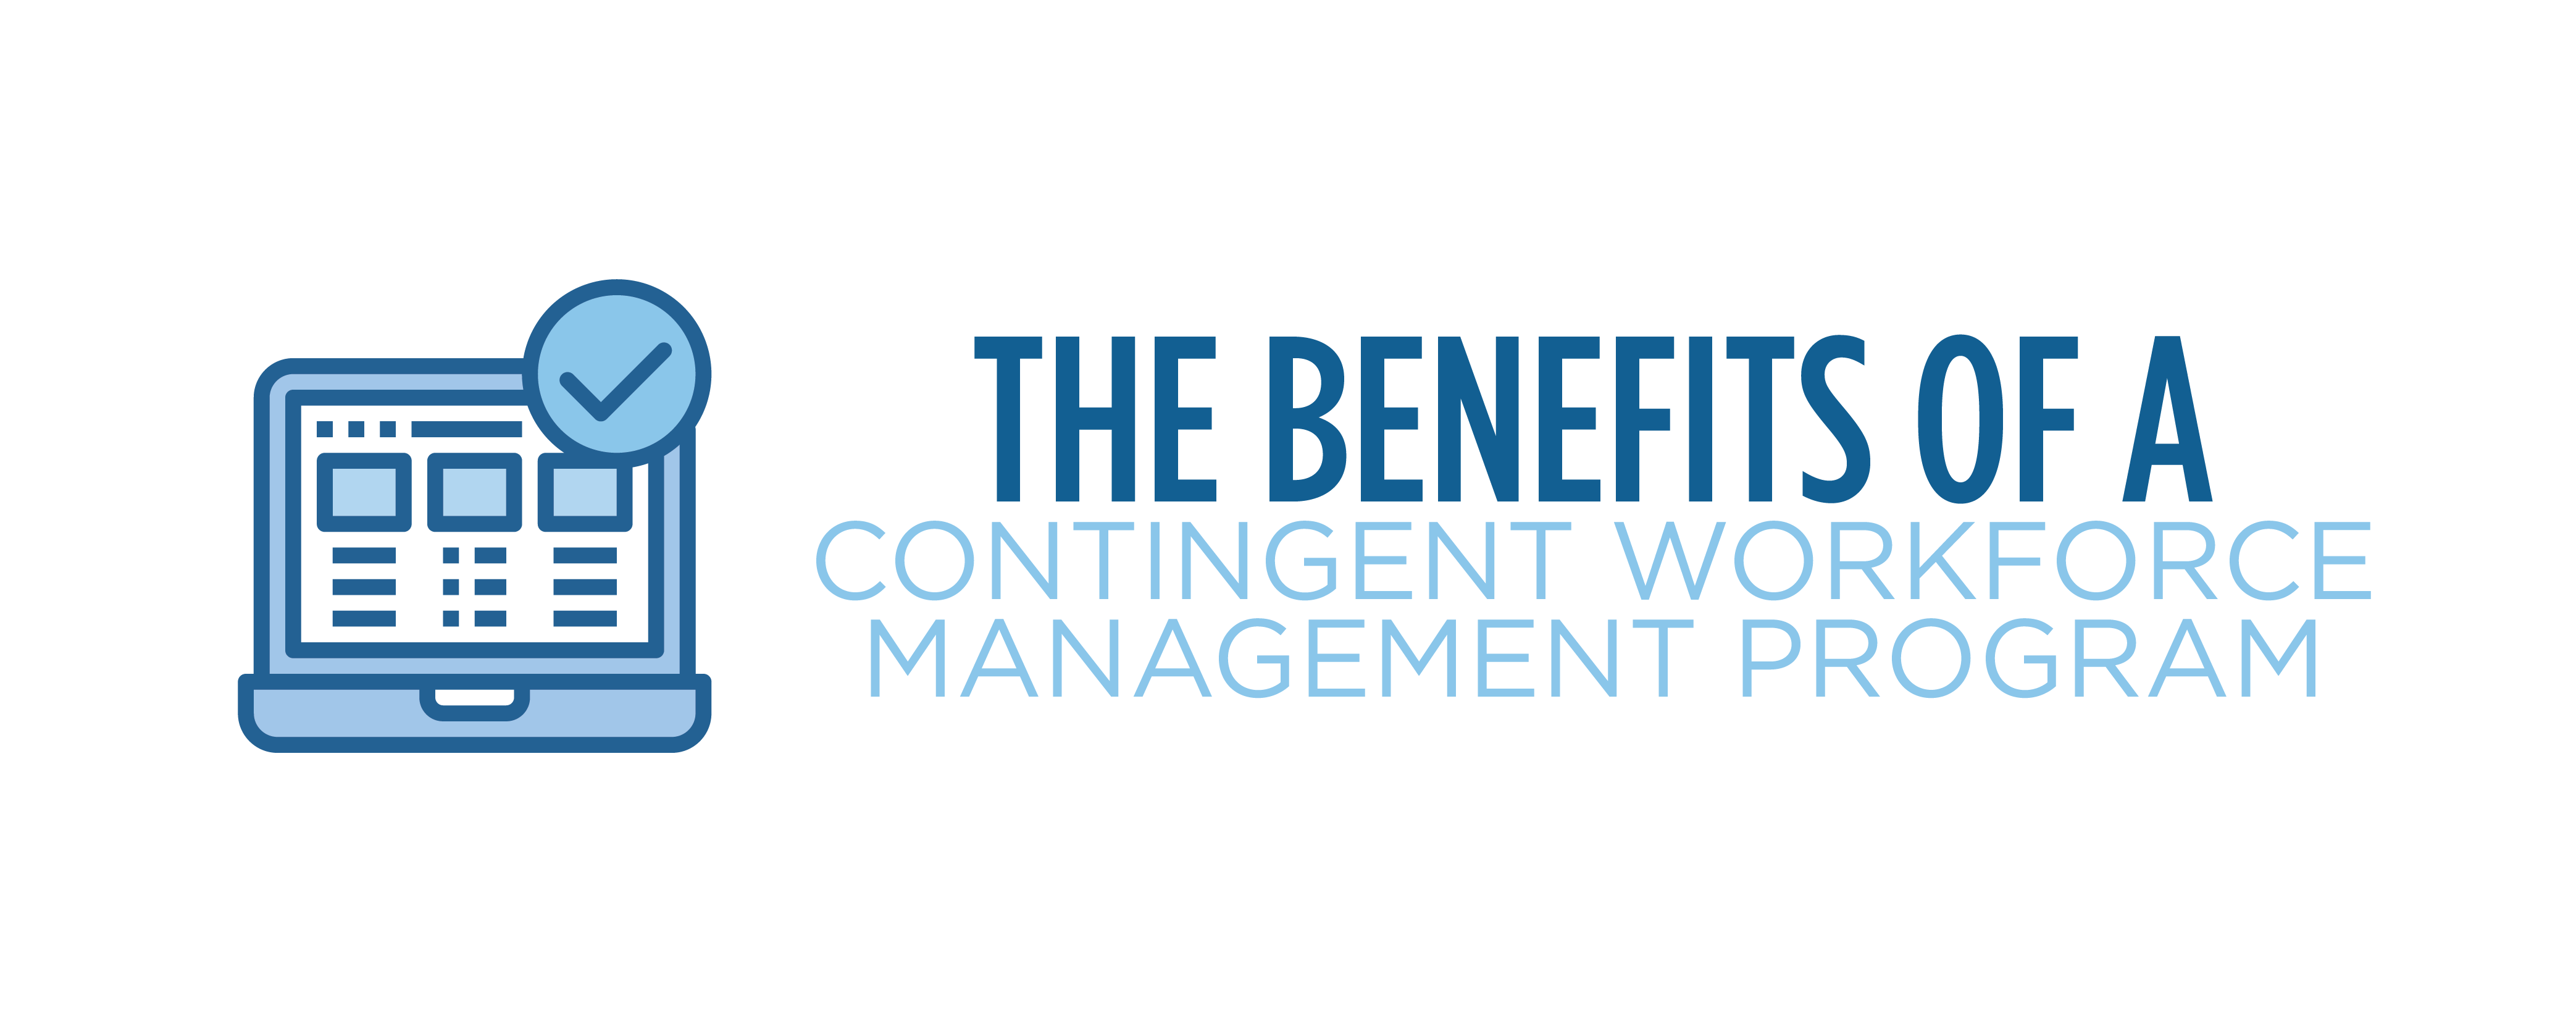 the benefits of a contingent workforce management program